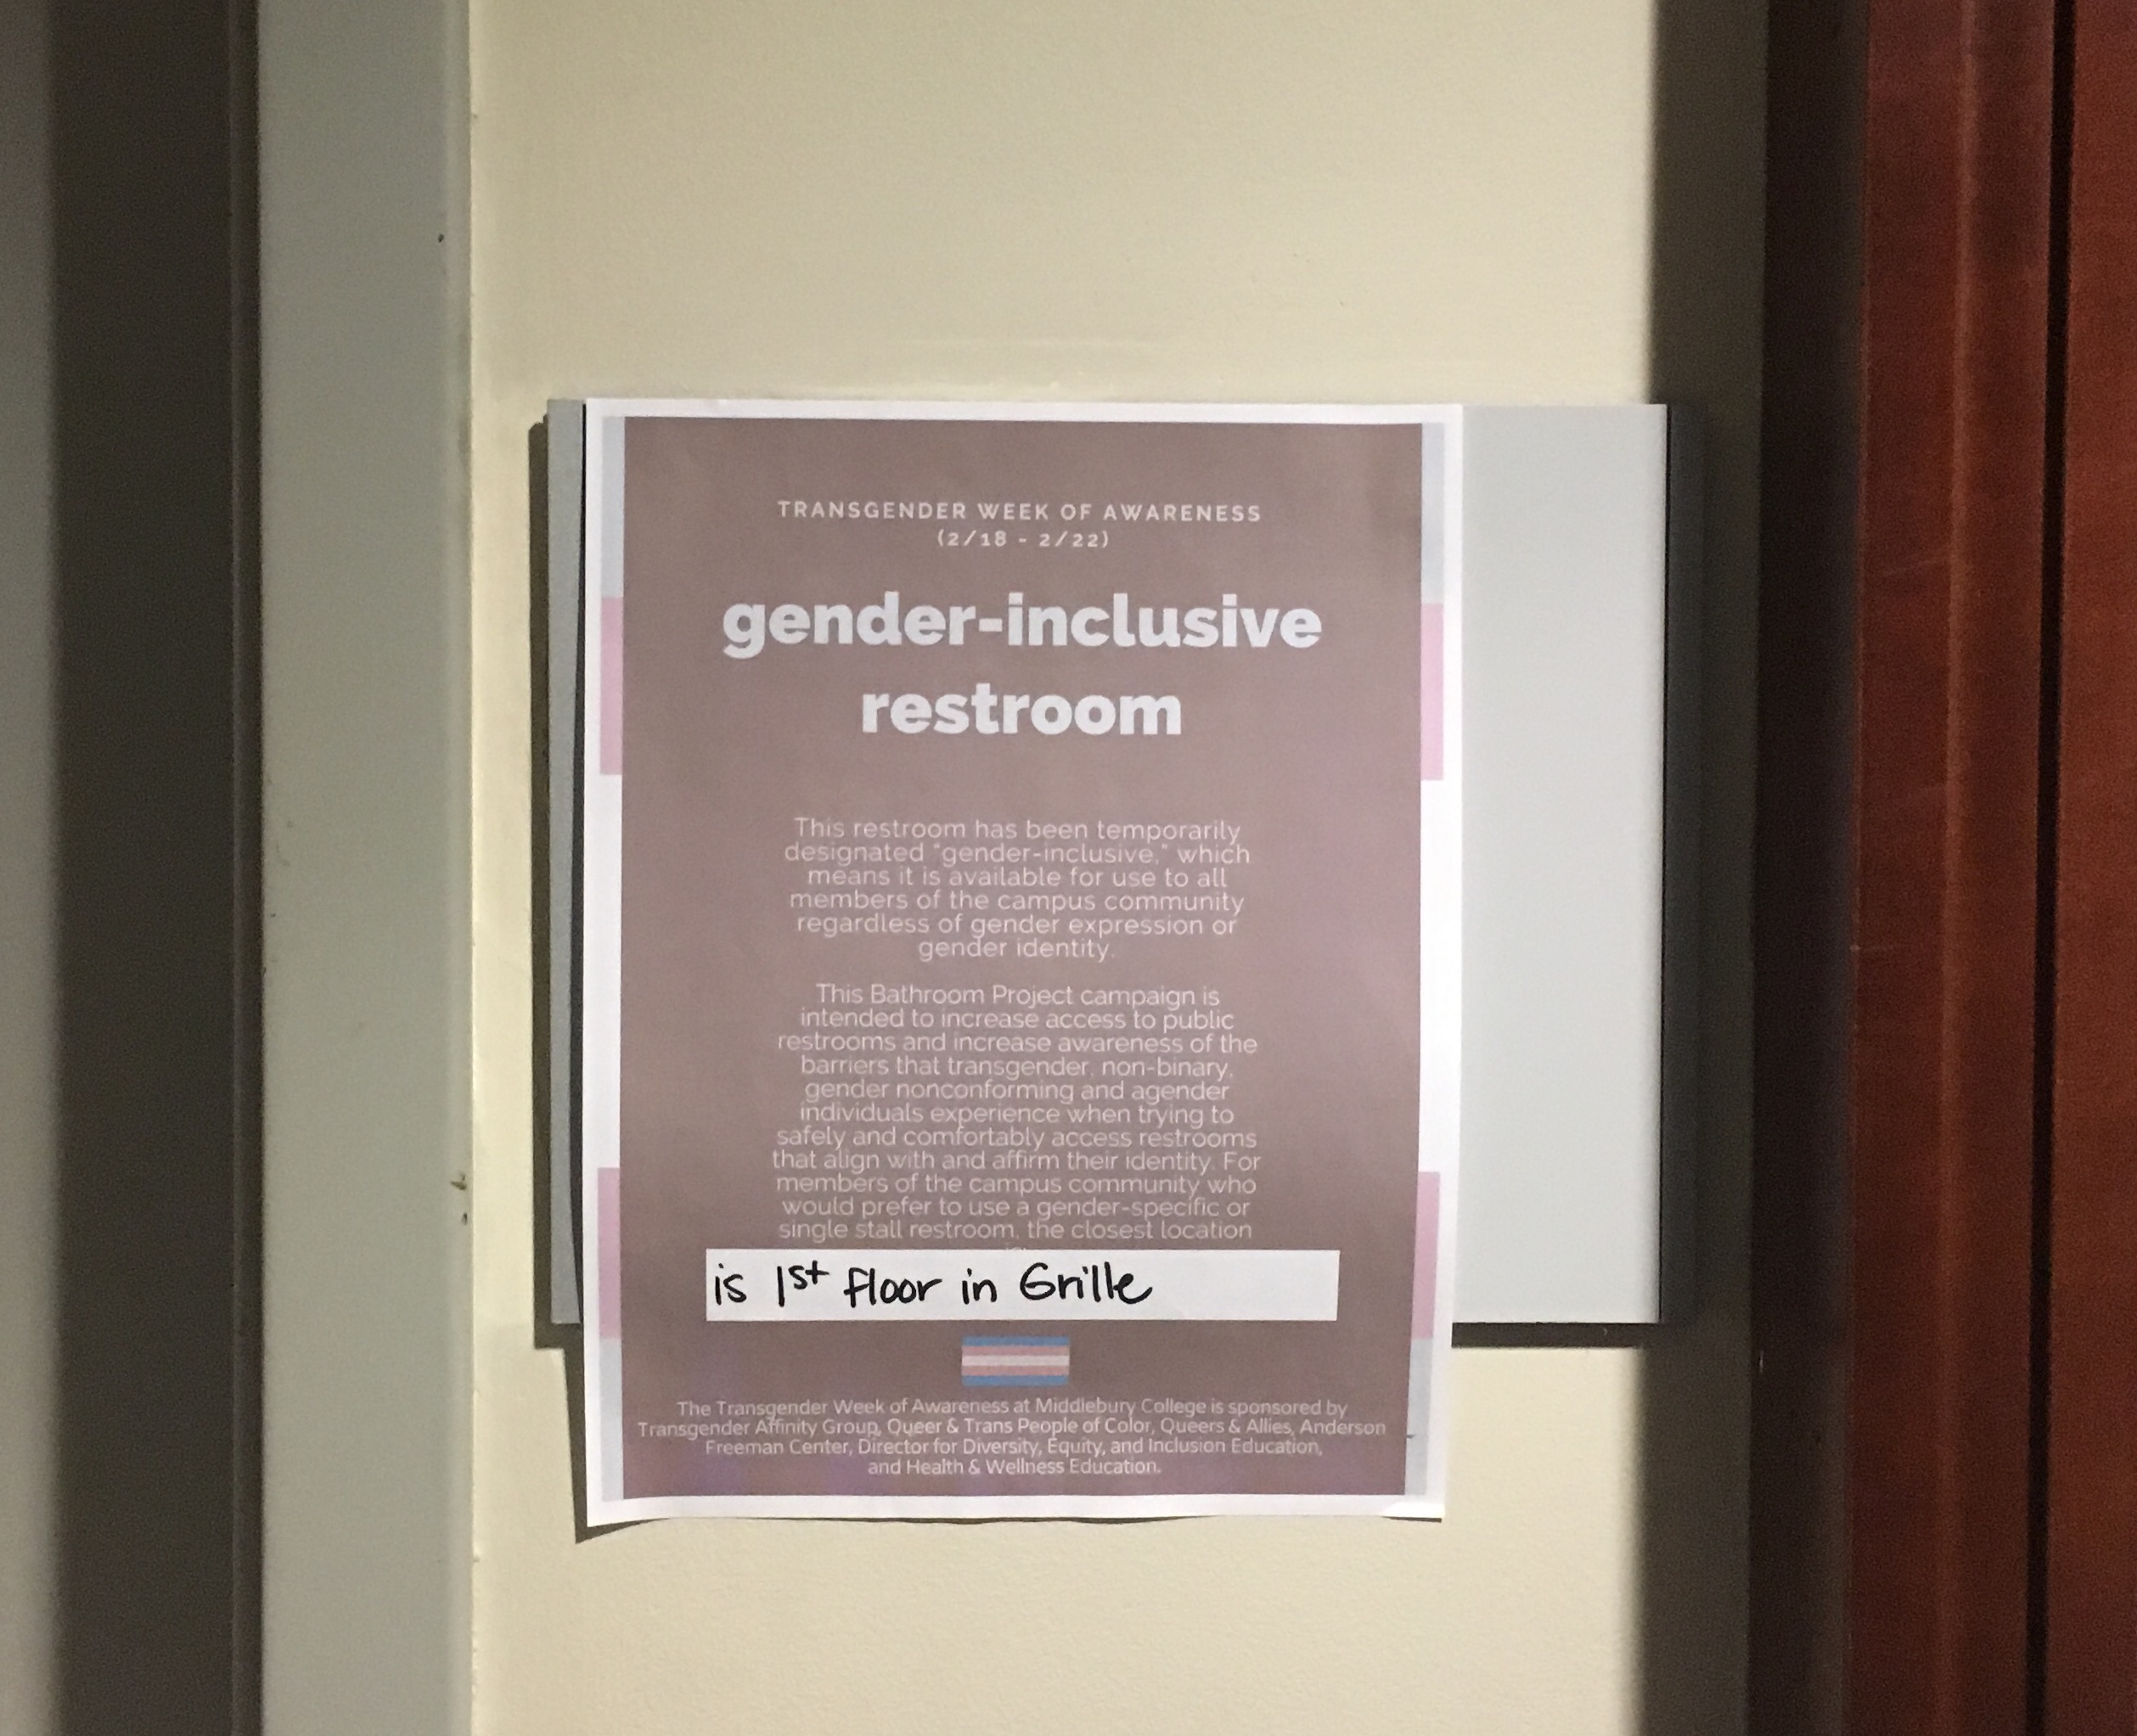 College Proudly Announces End of Transgender Awareness Week